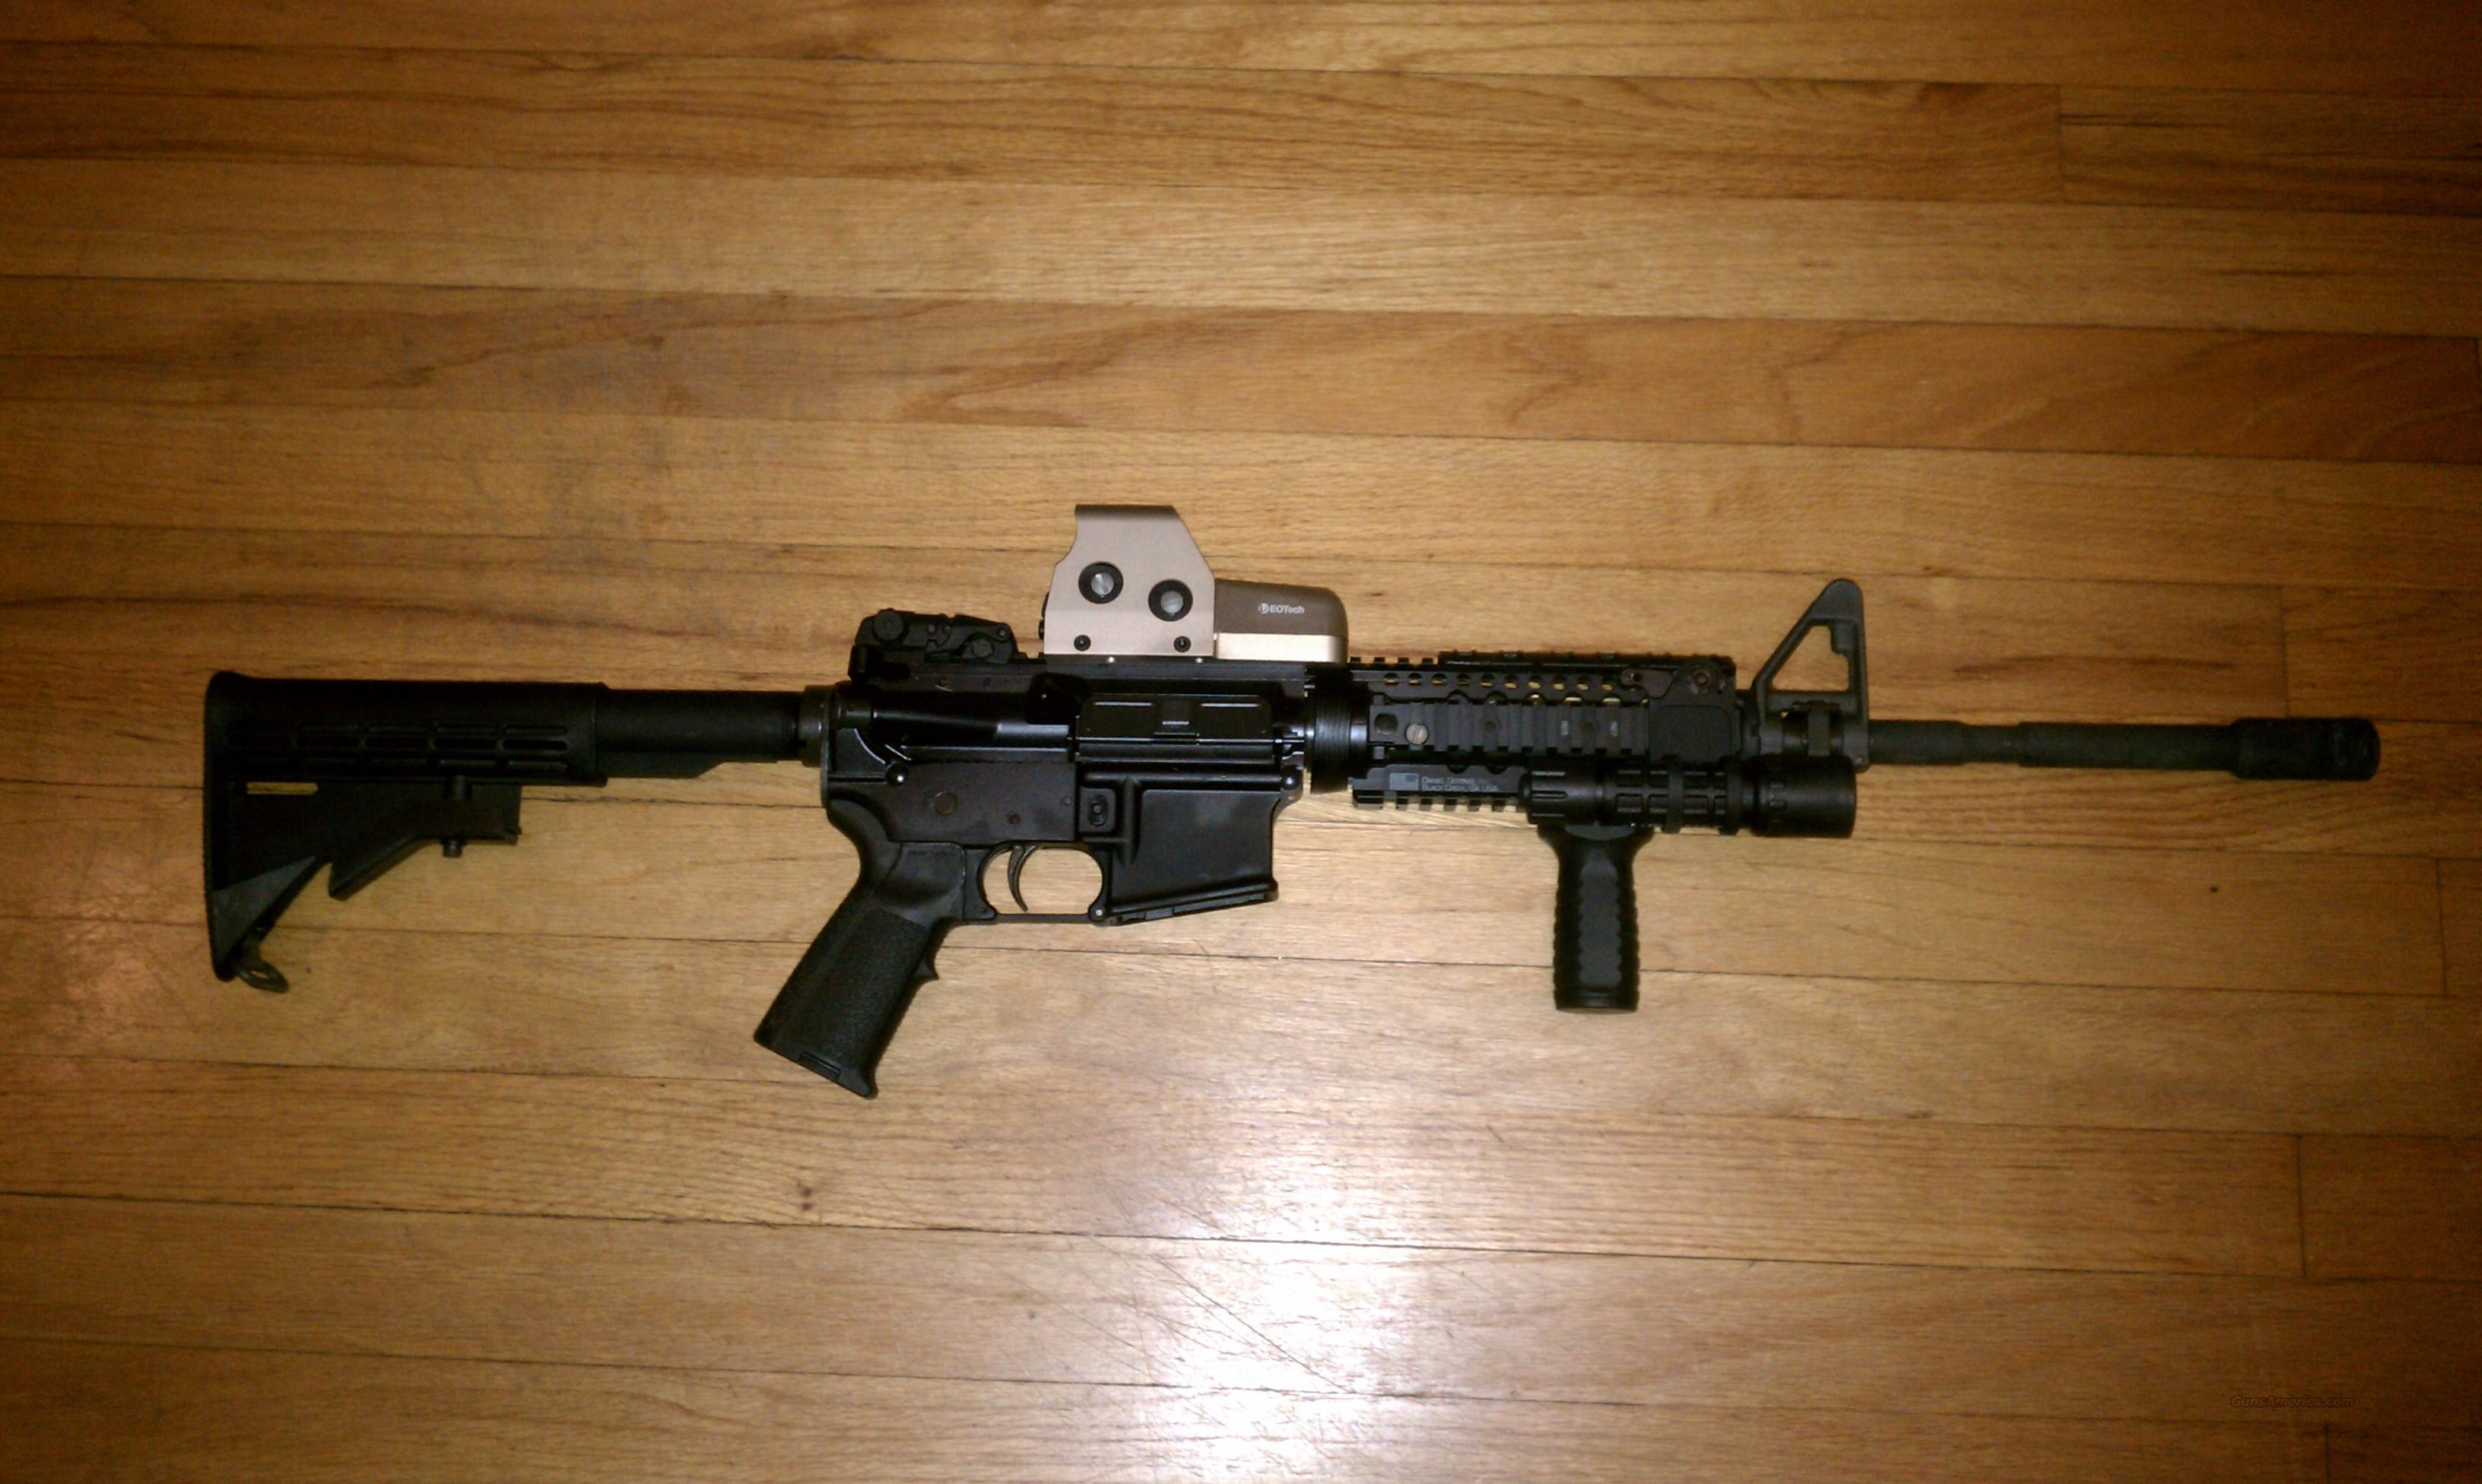 Colt AR15 w/ EOTech 553 and upgrades!  Guns > Rifles > Colt Military/Tactical Rifles